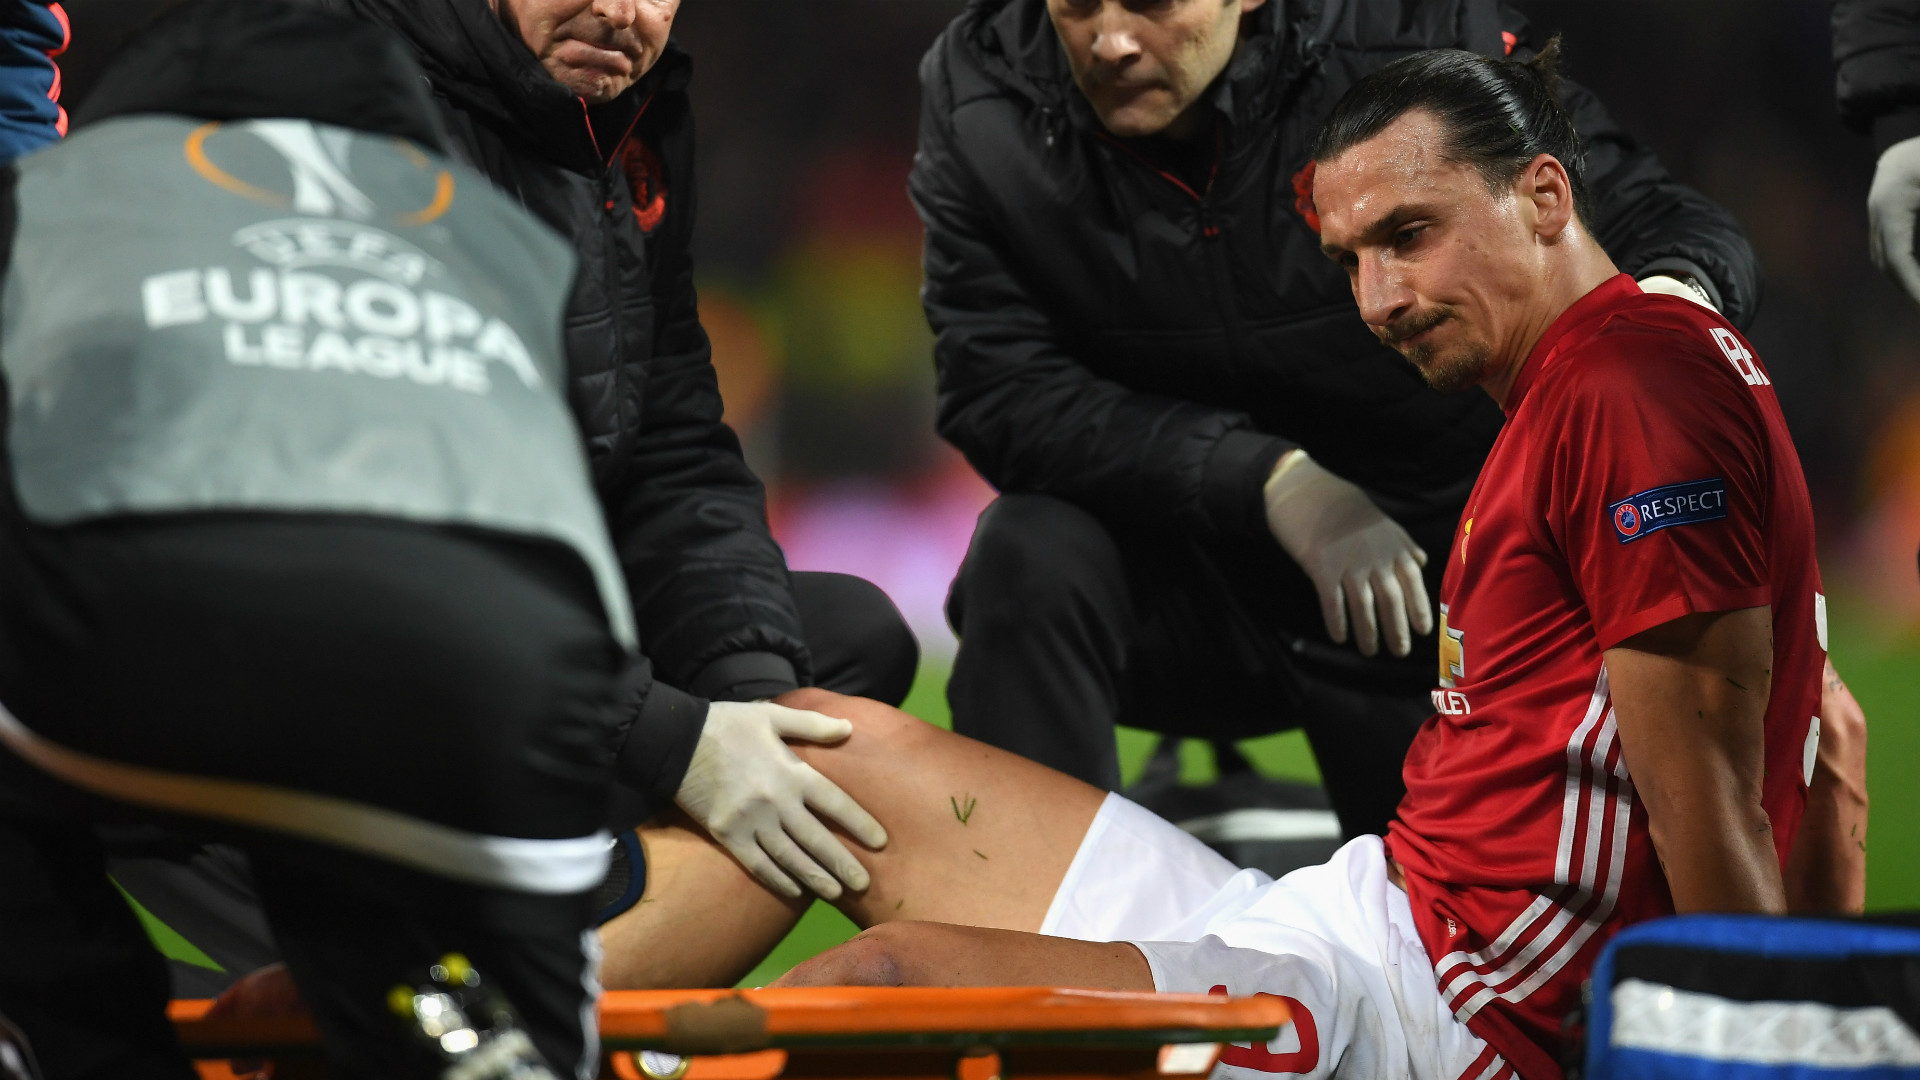 Jose Mourinho fears worst after Ibrahimovic and Rojo injuries sour European win